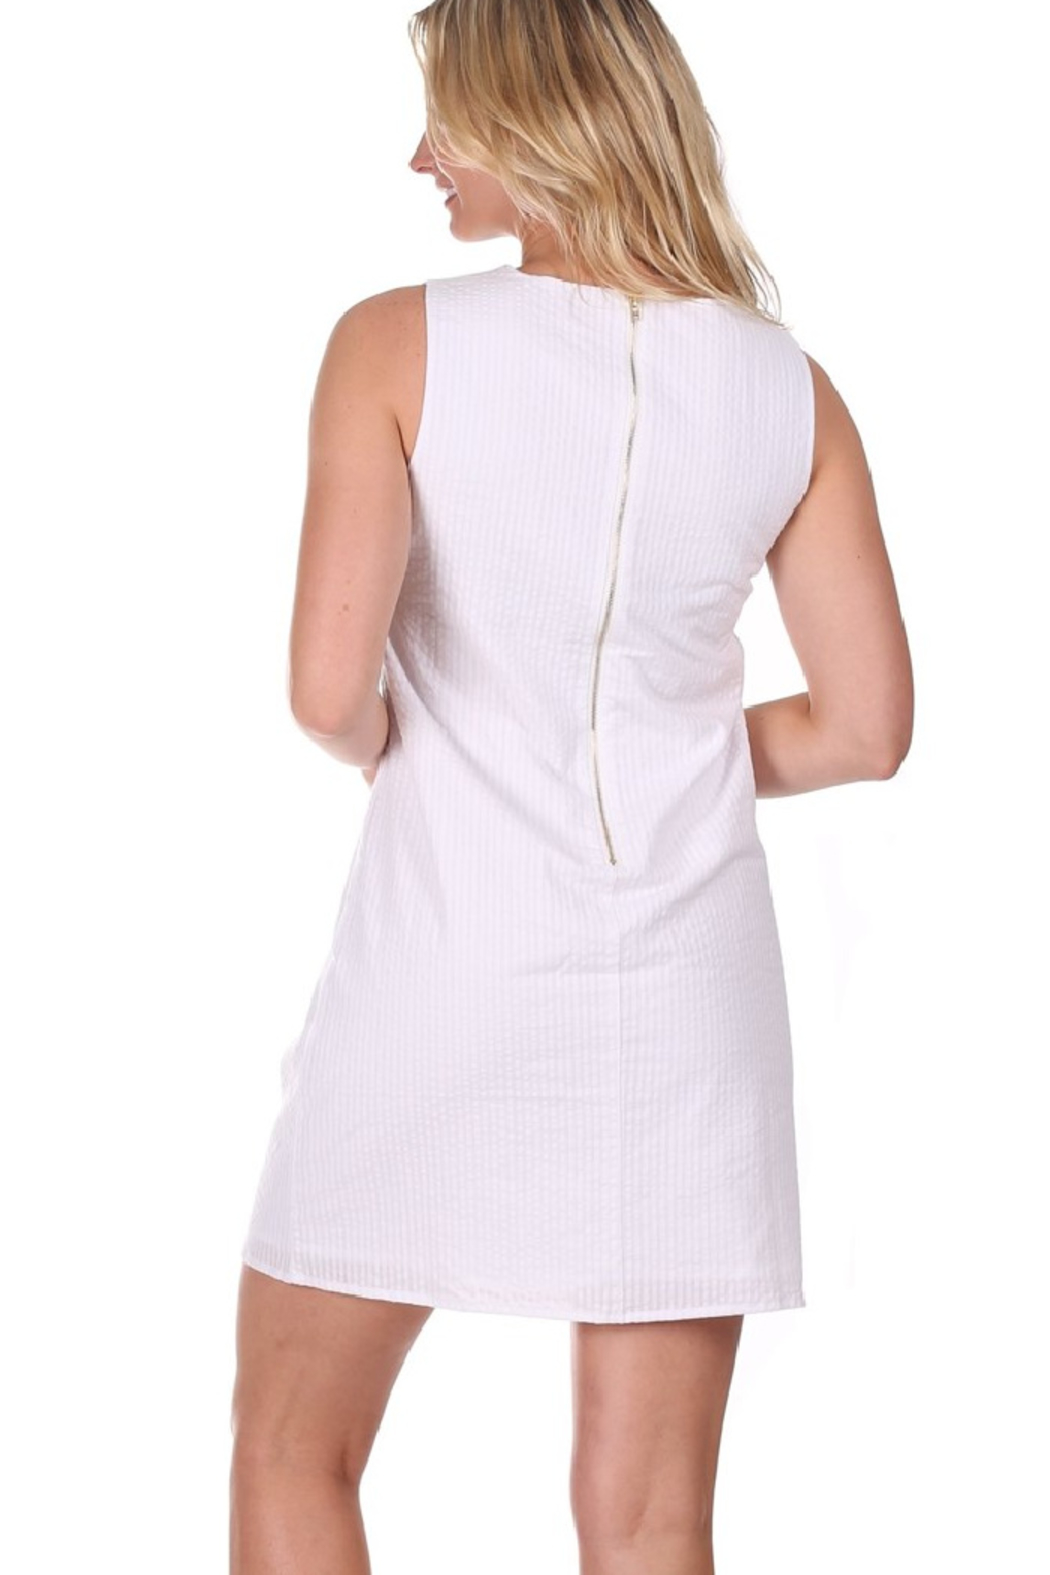 Duffield Lane Sinclair Dress - Front Full Image